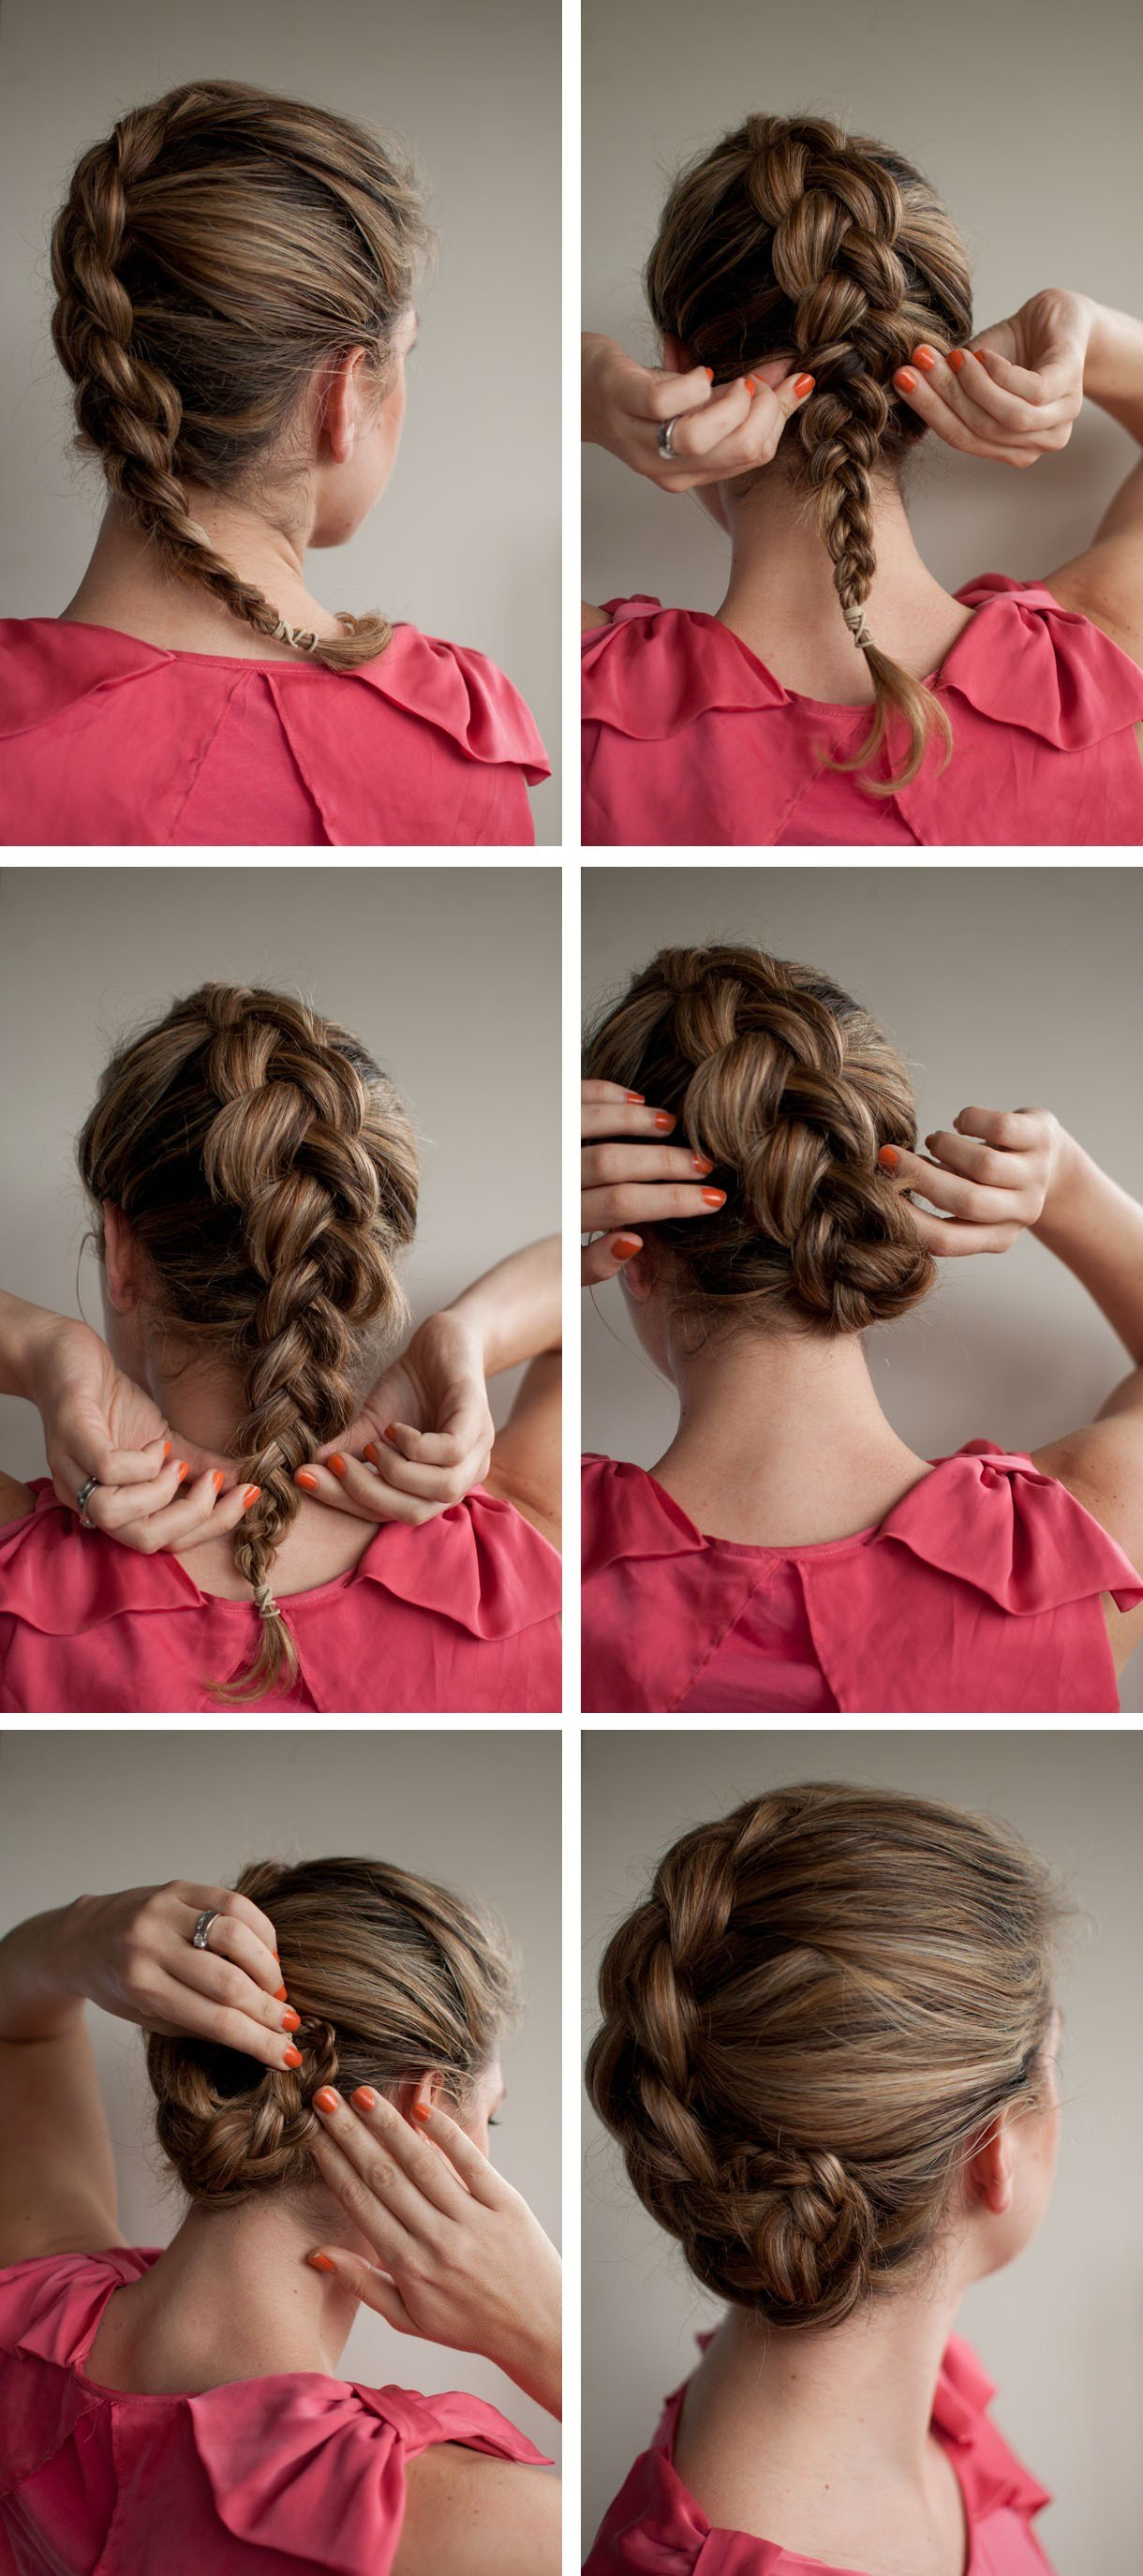 The Best Braided Upstyle Hair Romance On Latest Hairstyles Hair Pictures